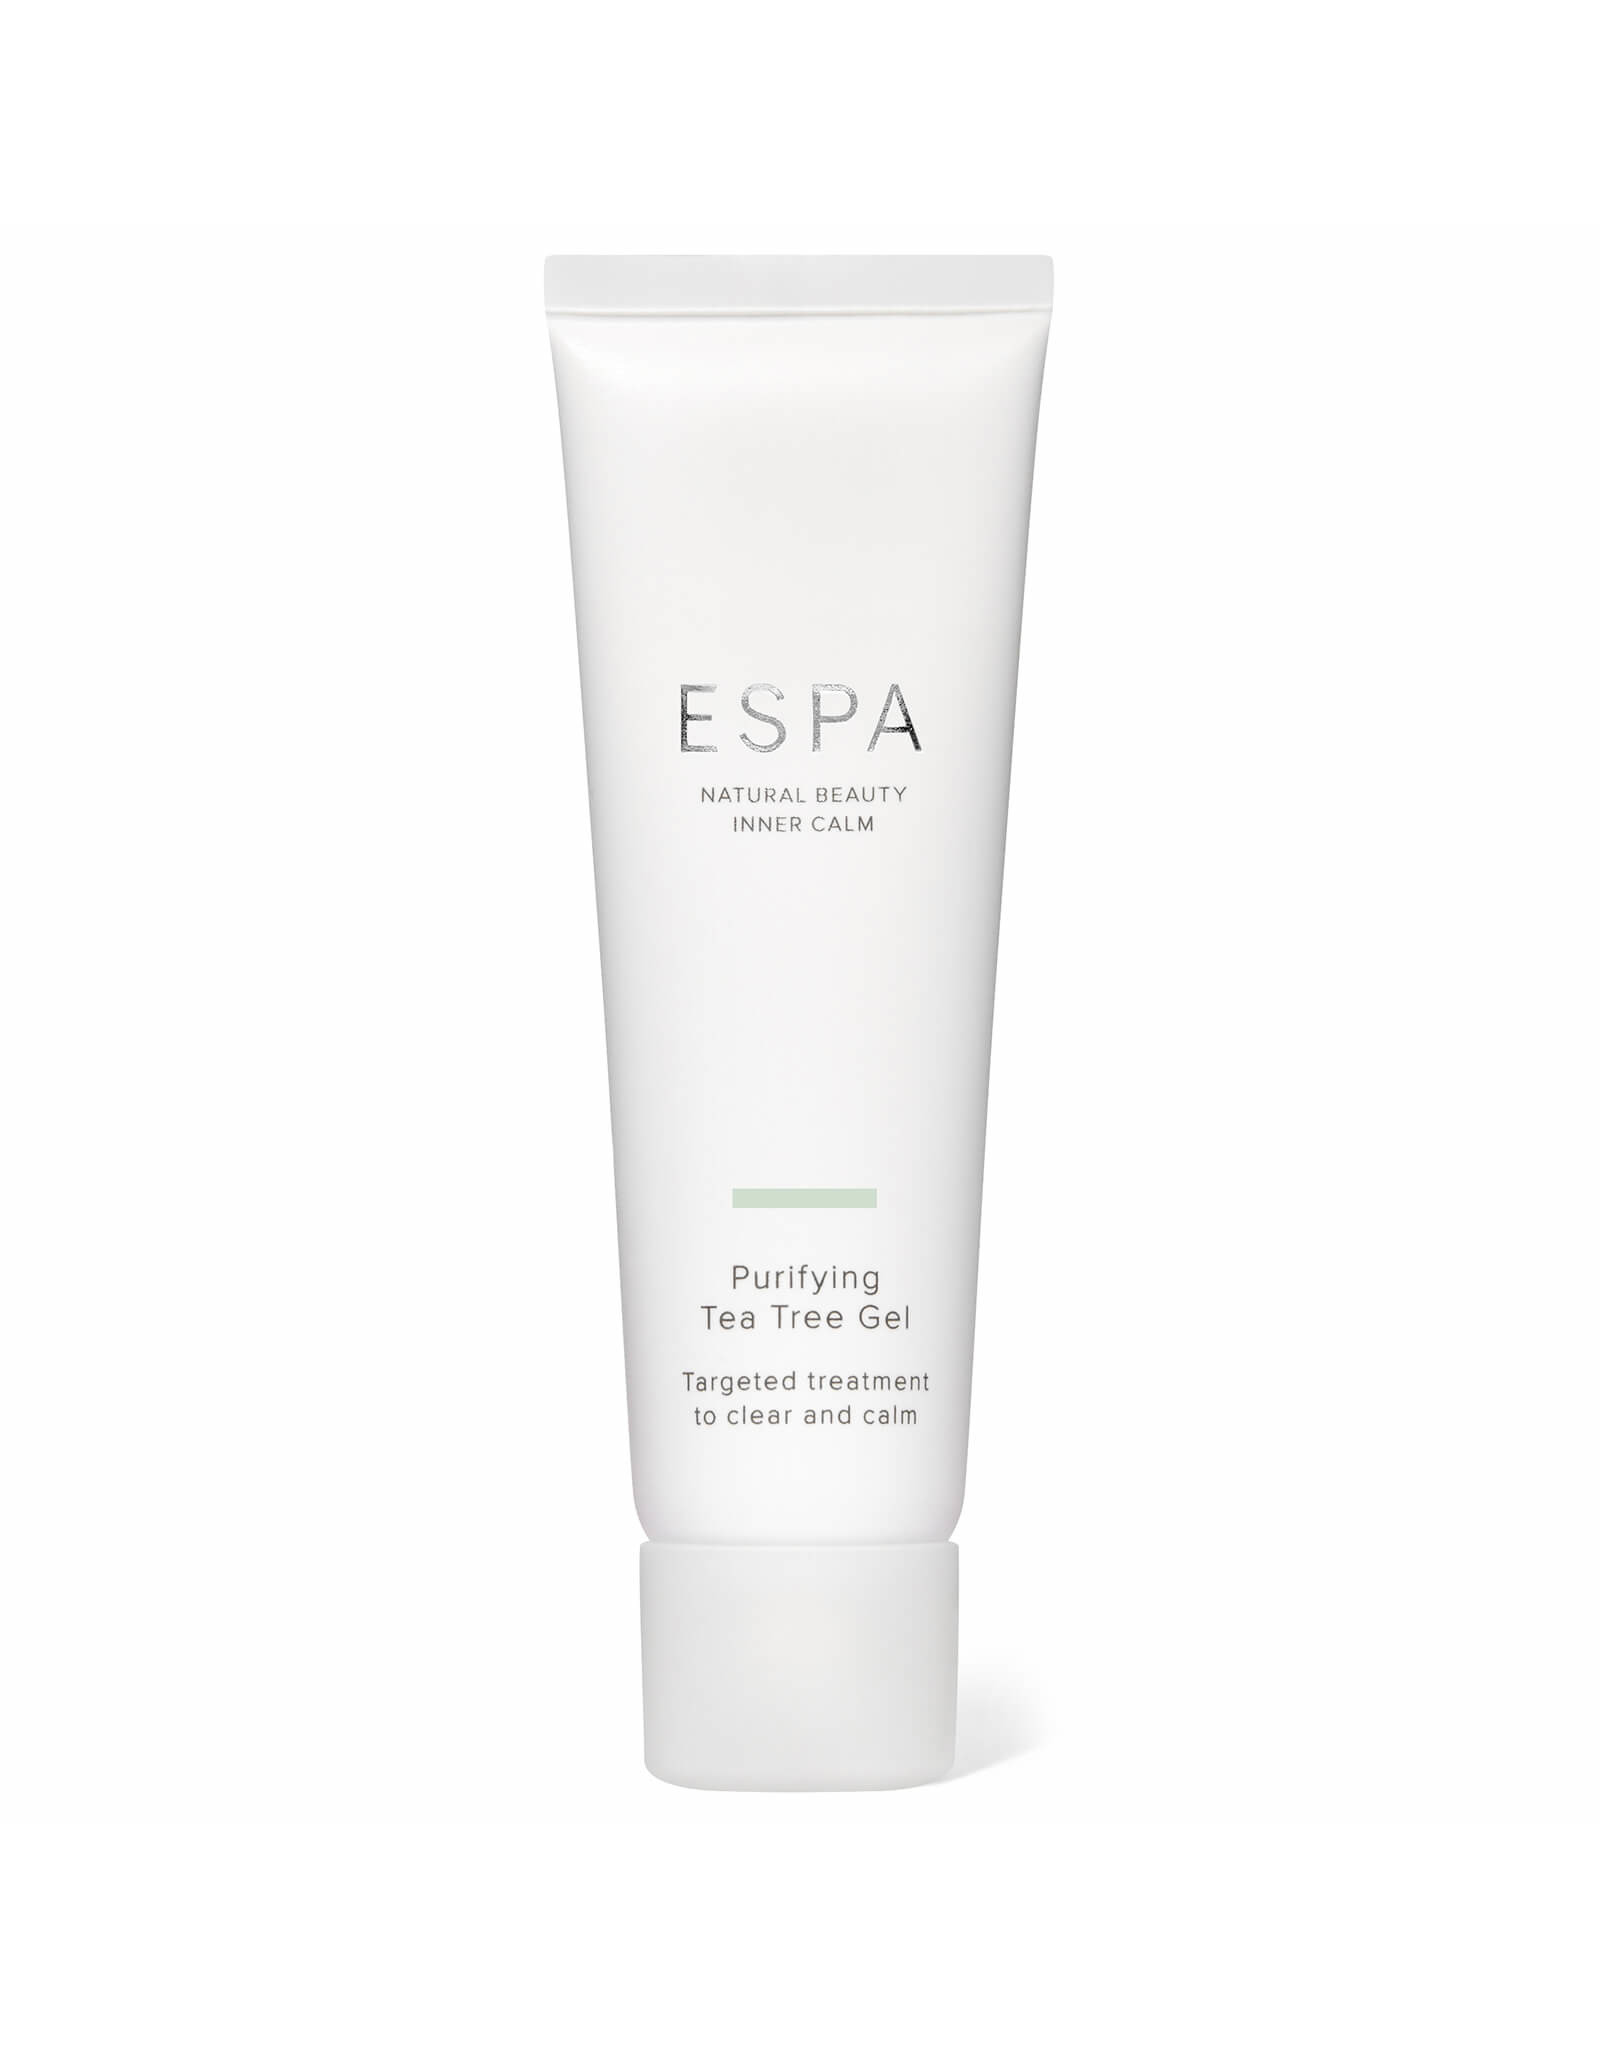 ESPA Purifying Tea Tree Gel, 50ml